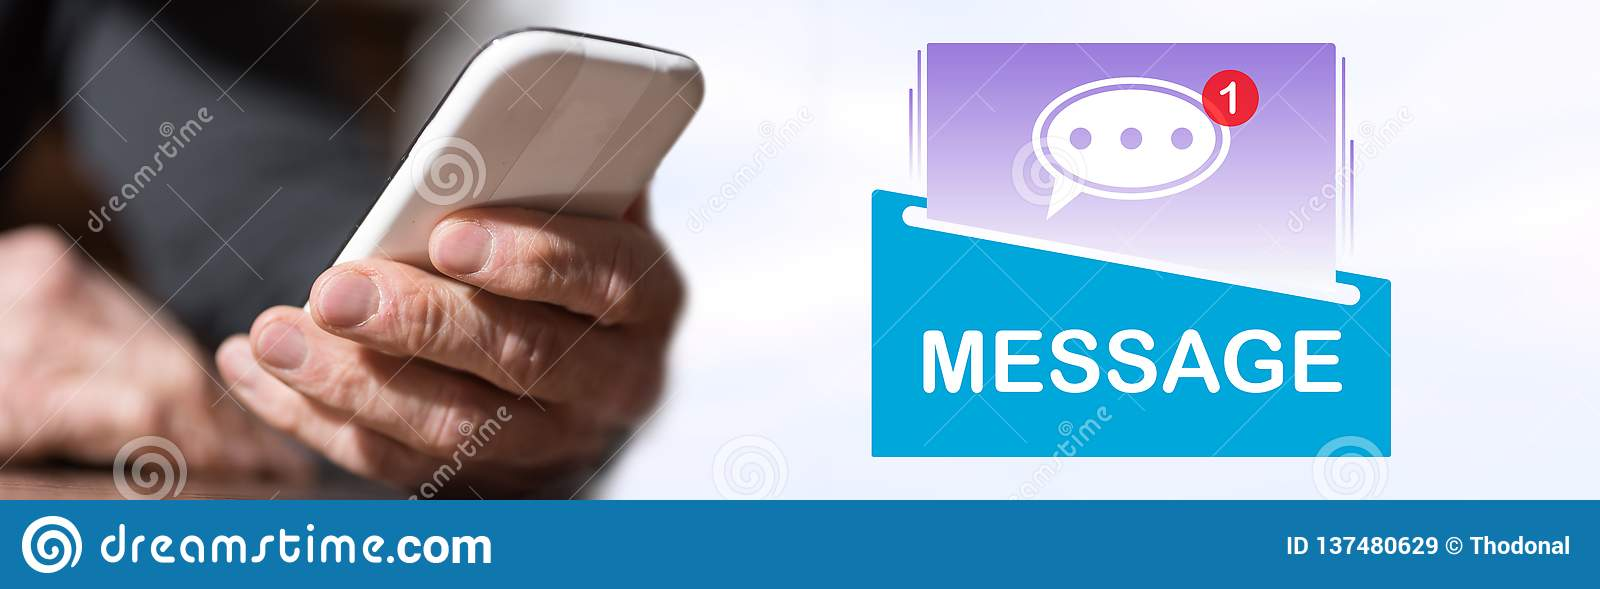 Concept of message. Hand holding mobil phone with message concept on background royalty free stock images